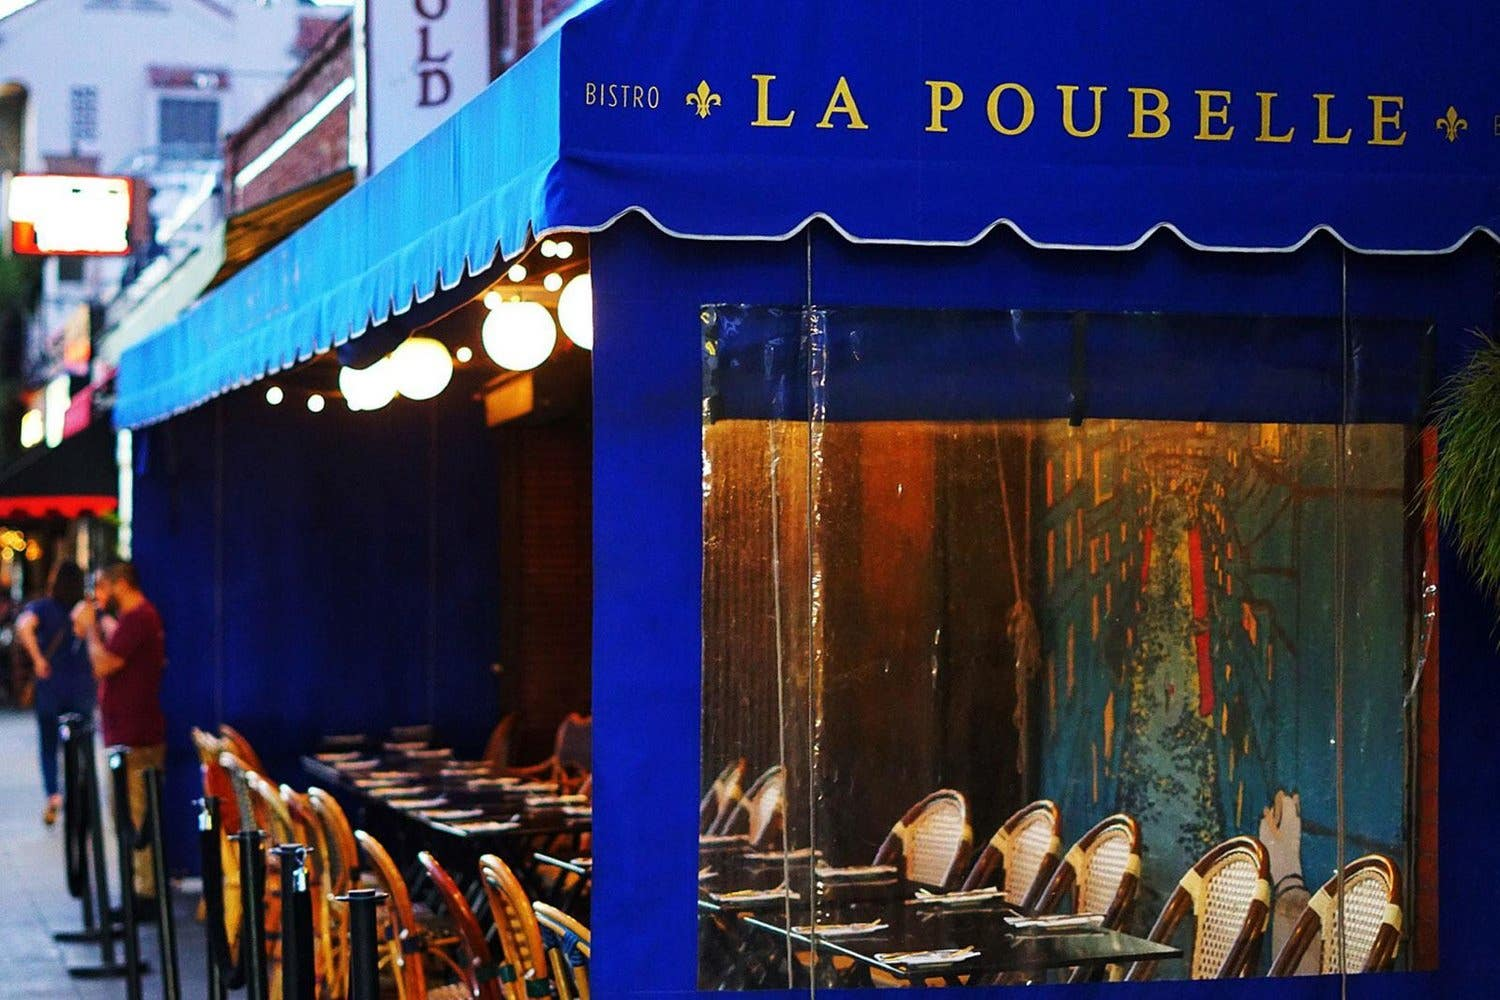 La Poubelle patio